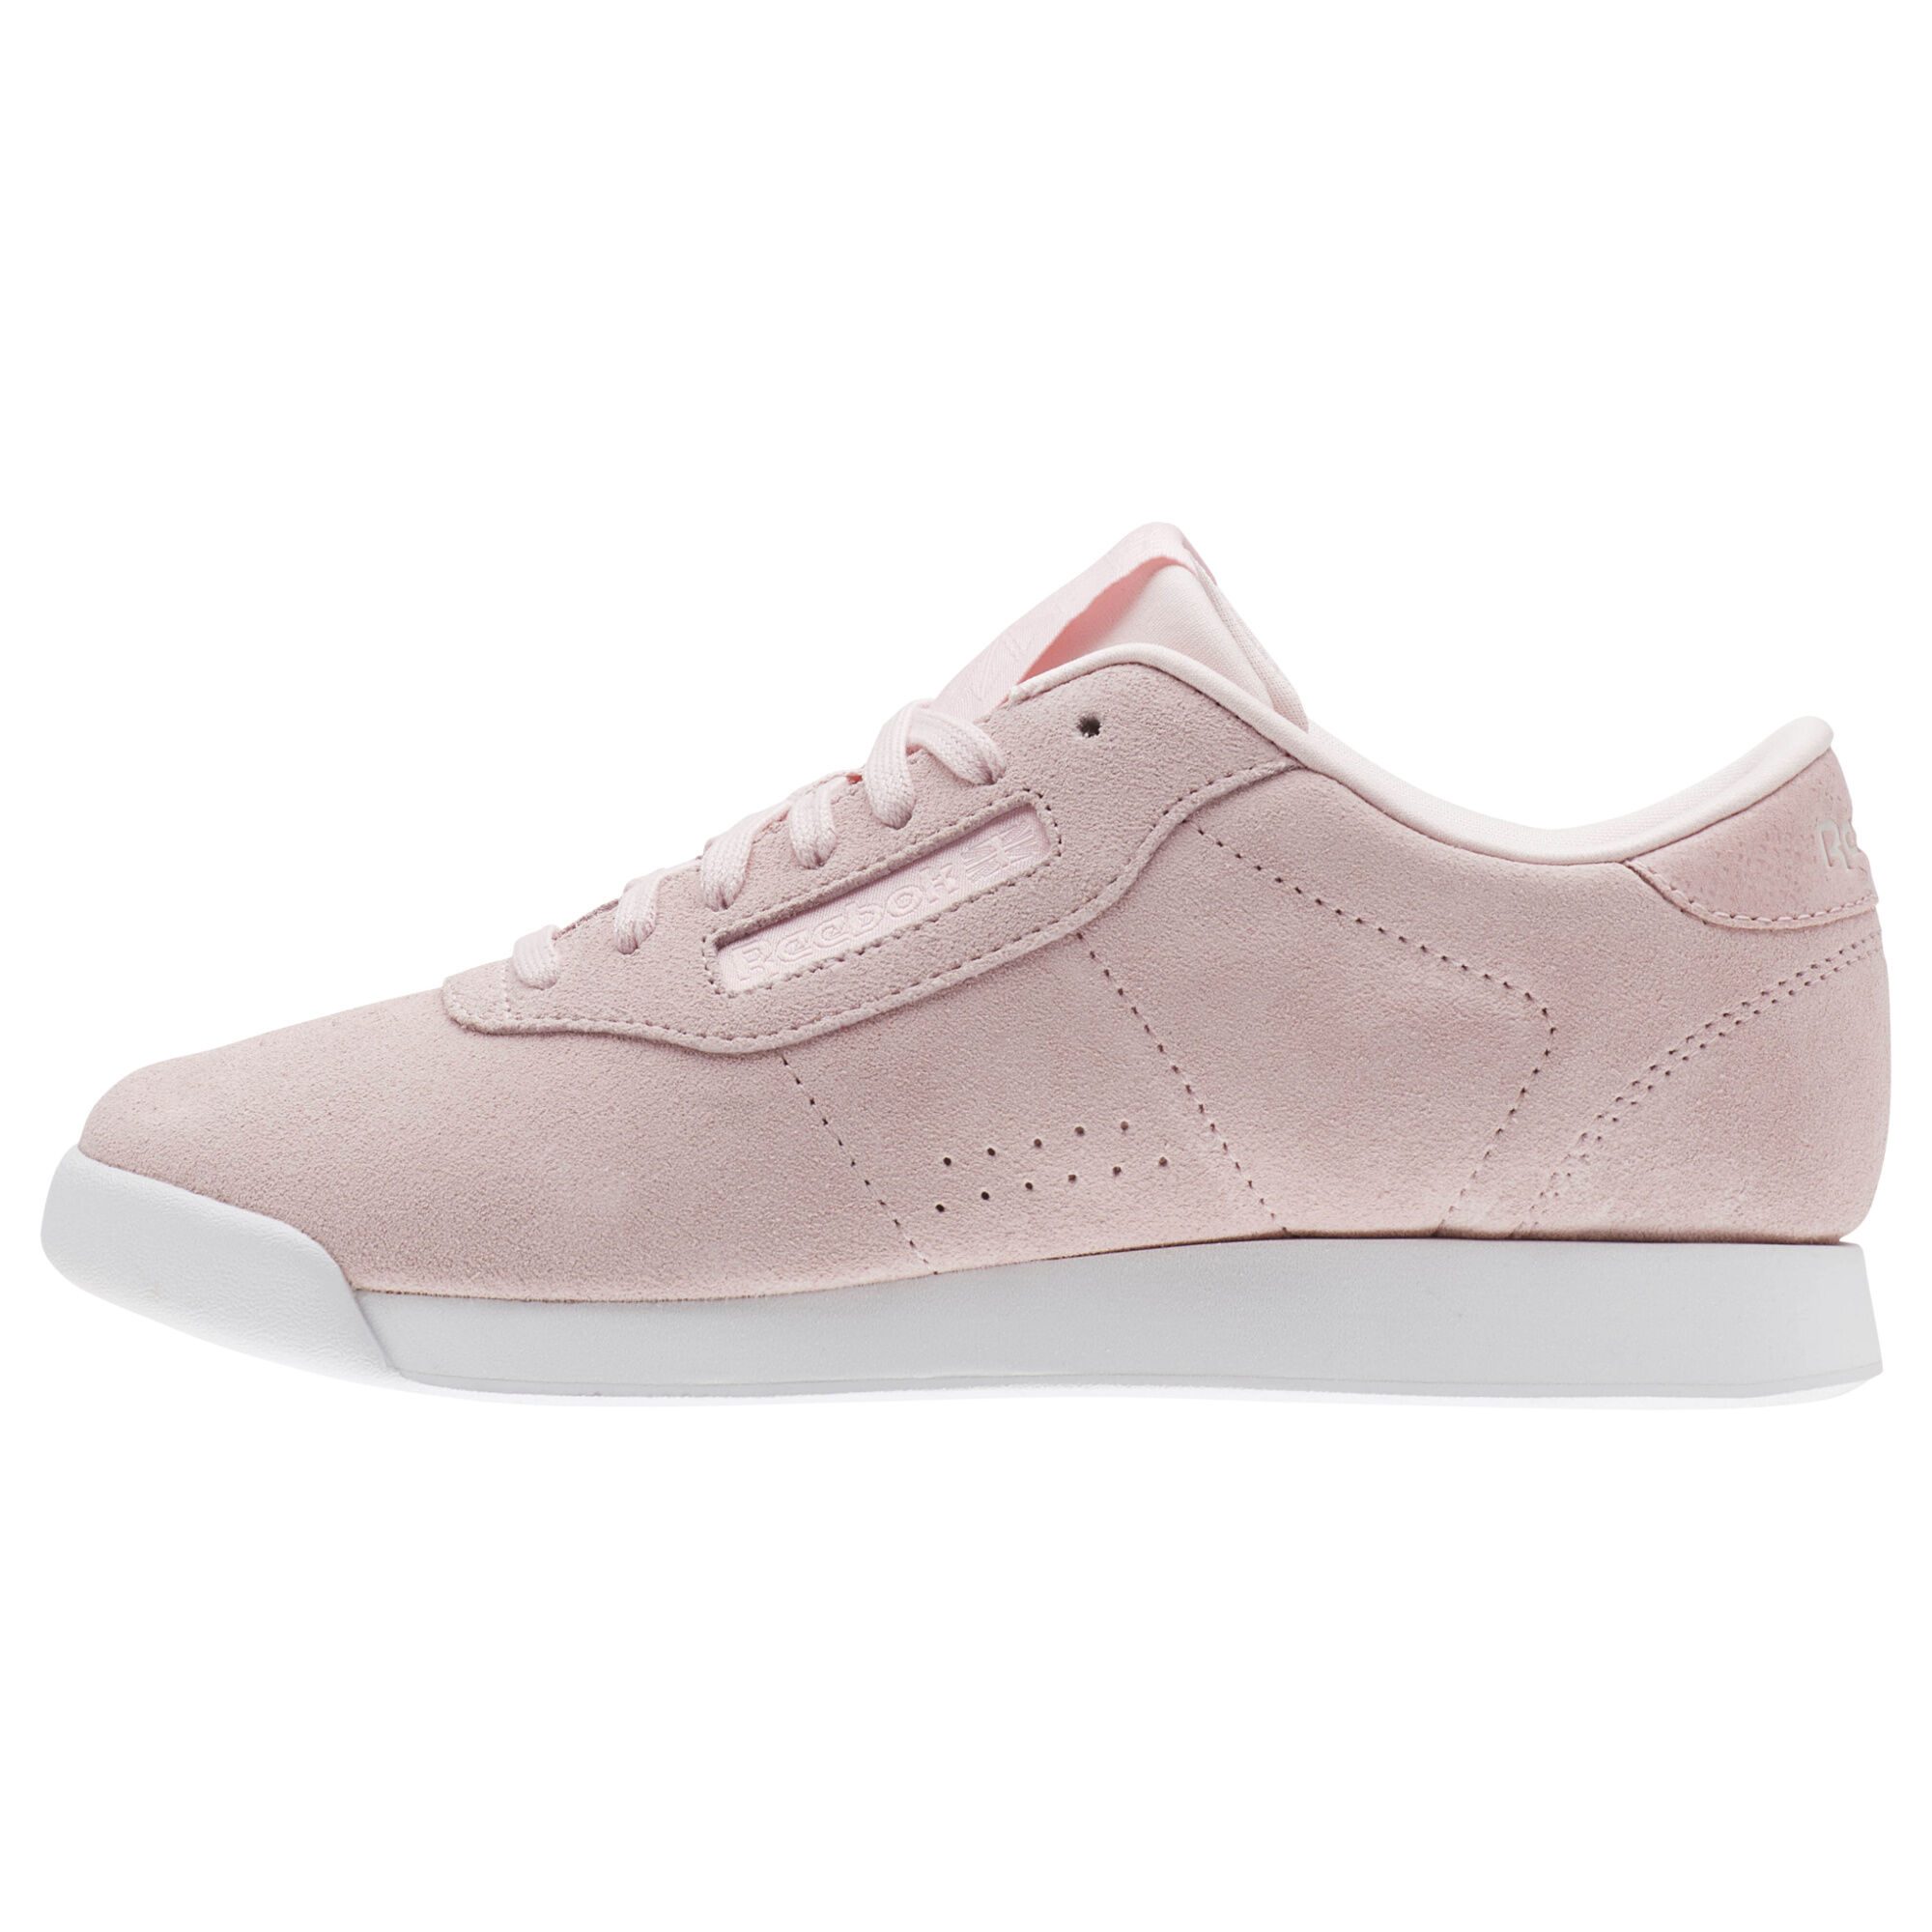 Reebok Princess Leather - Beige | Reebok Norway